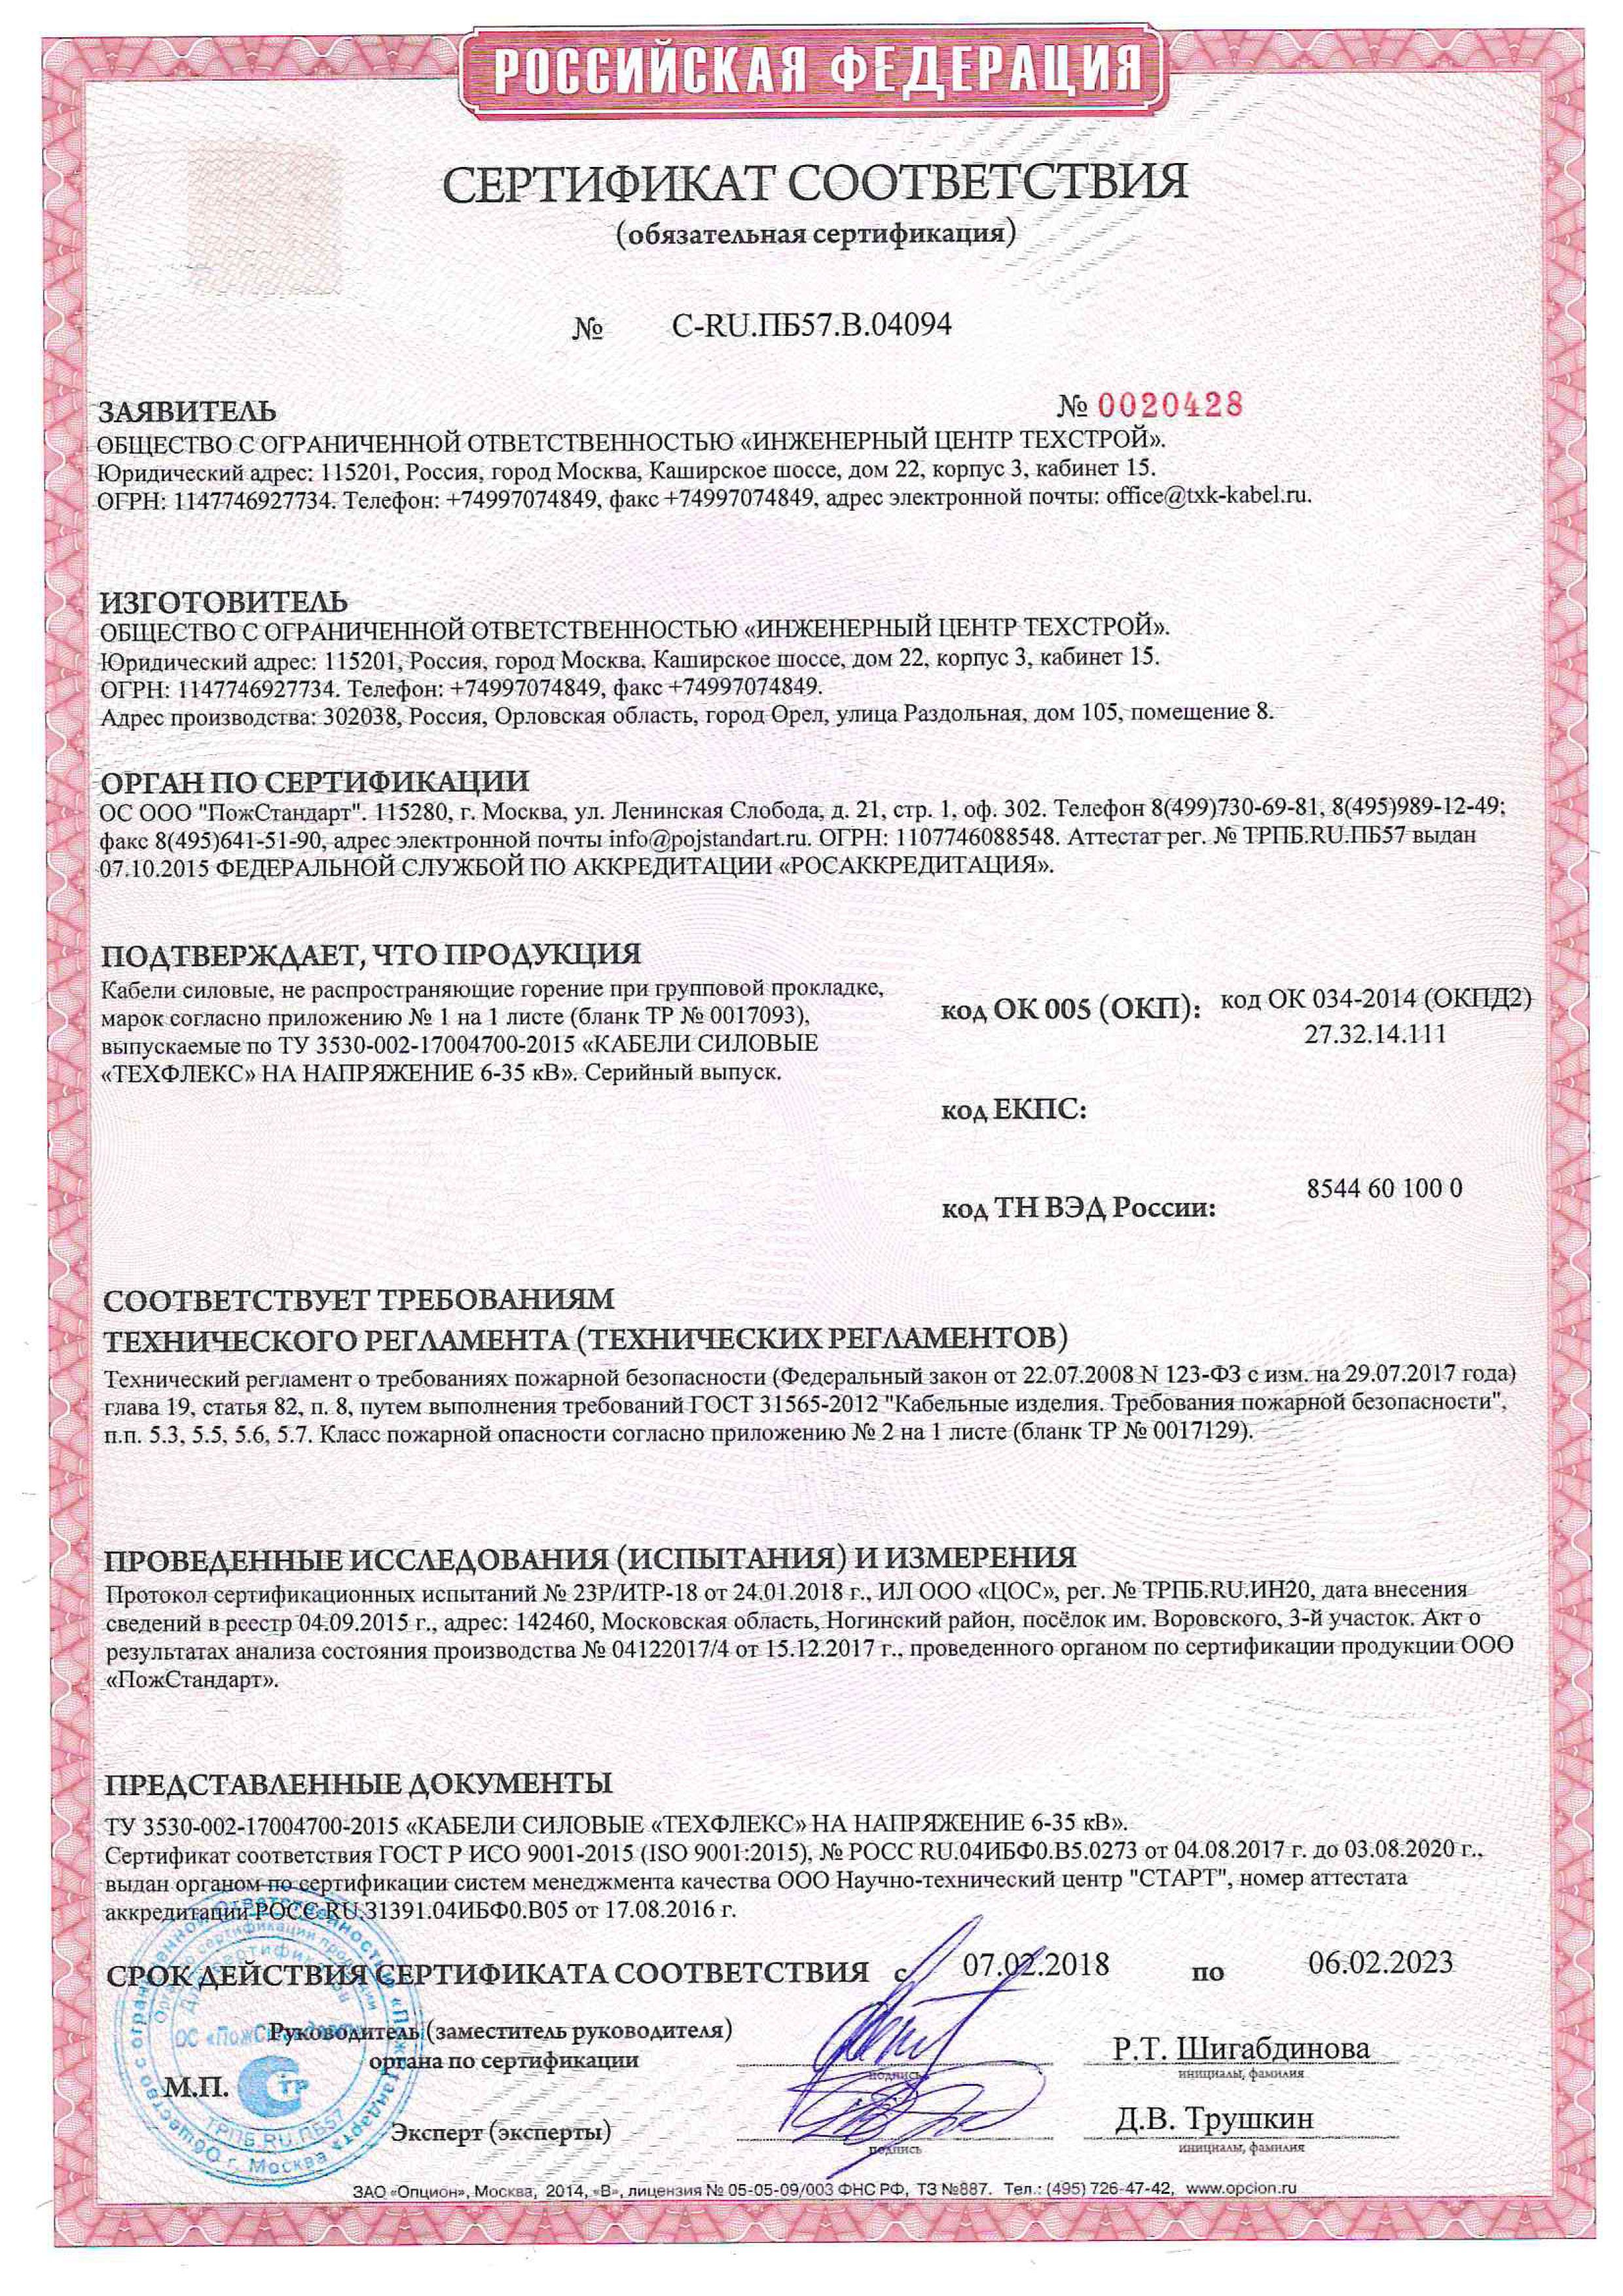 Certificate of Conformity to Technical Specifications for Power Cables of 6-35 kV -1